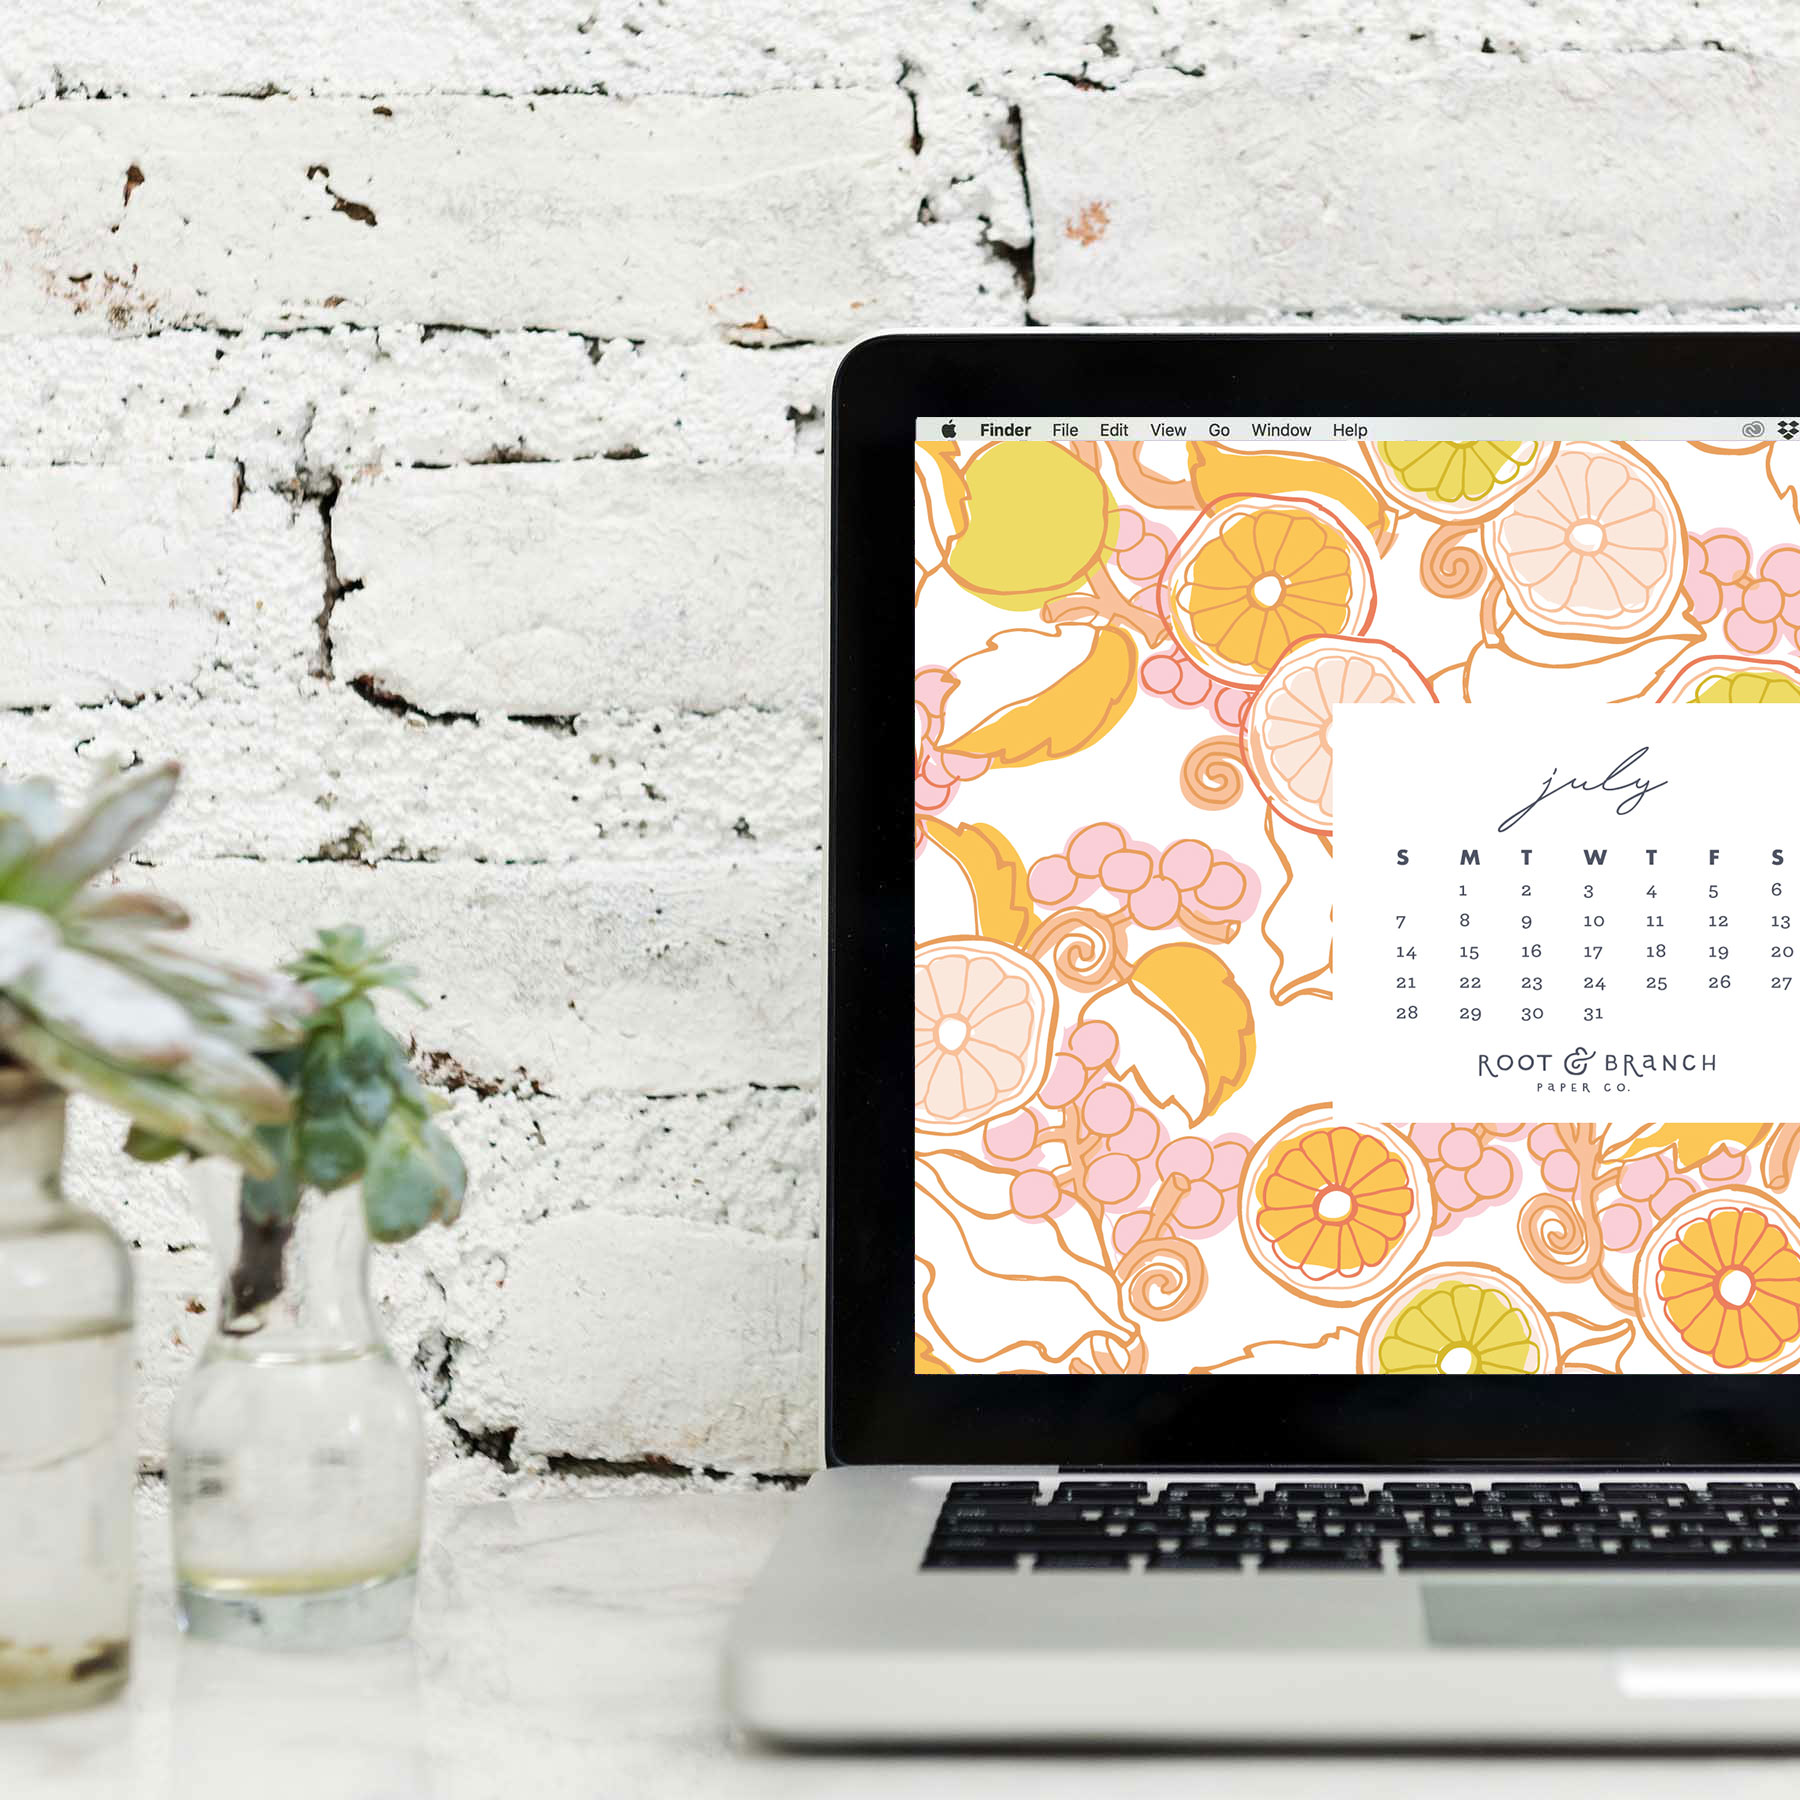 July 2019 Calendar Desktop Wallpaper, July 2019 Digital Wallpapers for Download from Root & Branch Paper Co.